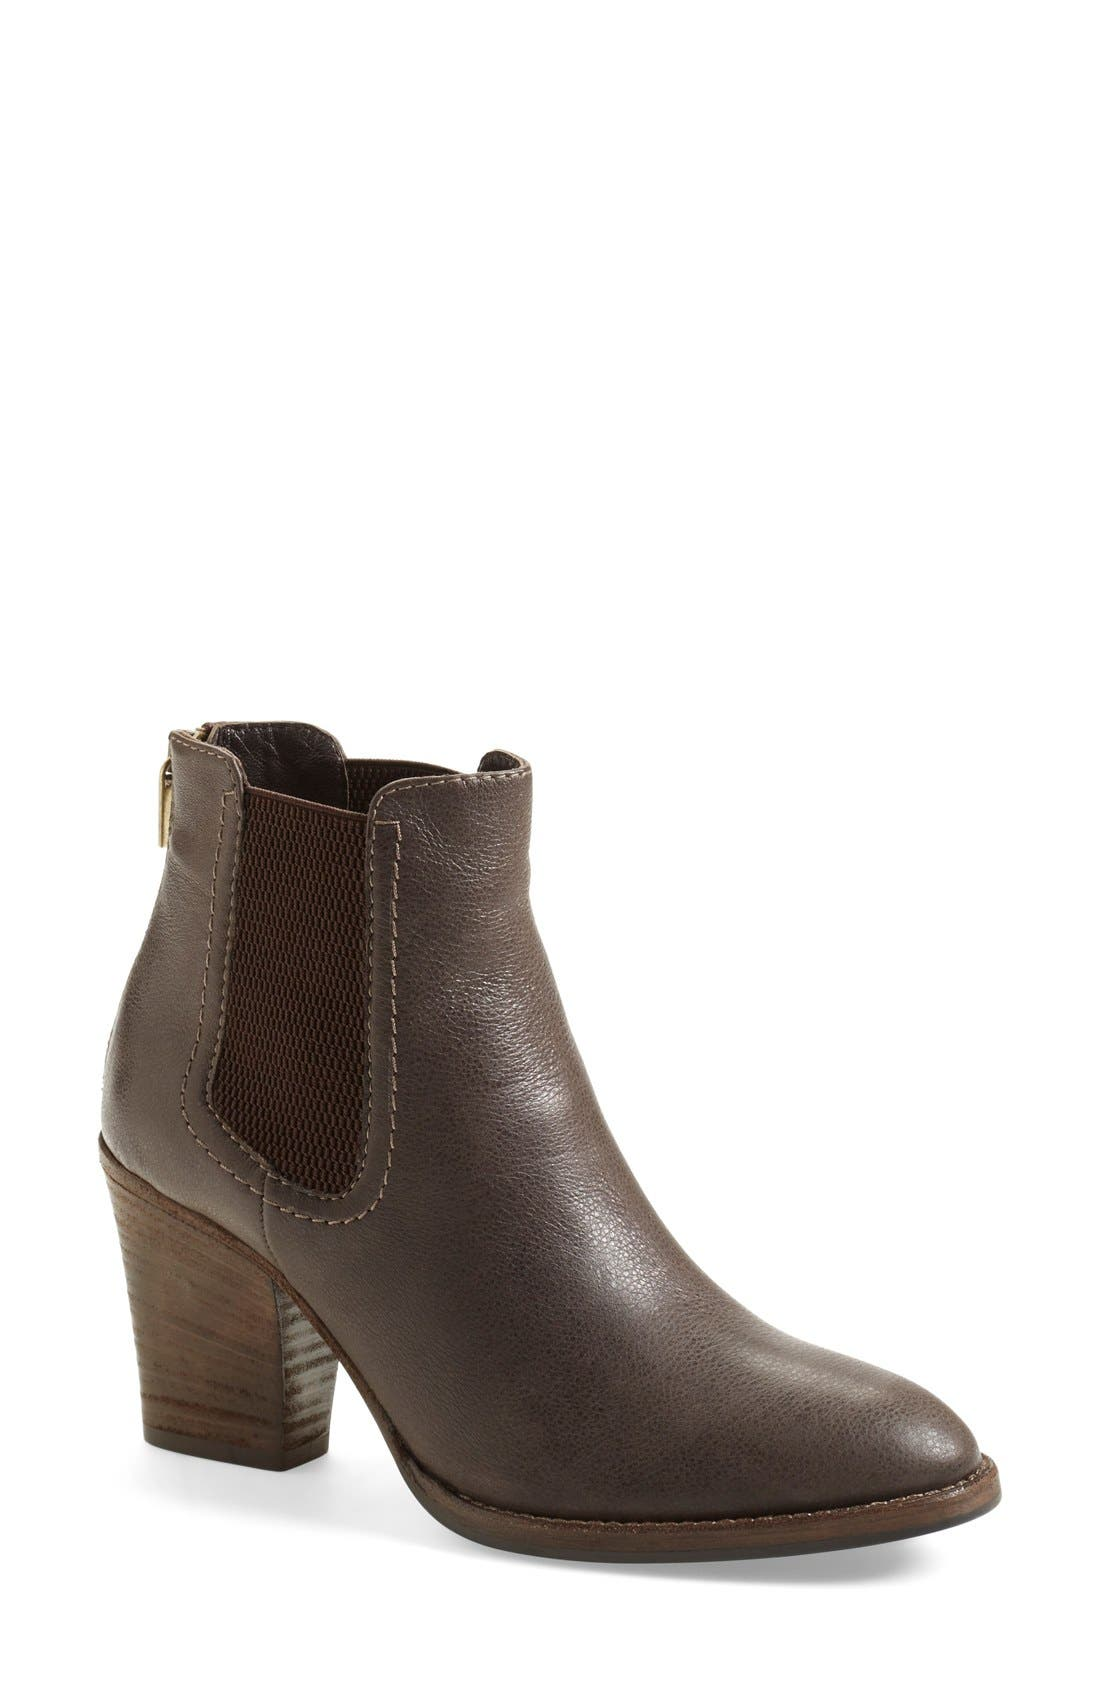 Alternate Image 1 Selected - Aquatalia 'Fairly' Weatherproof Ankle Bootie (Women)